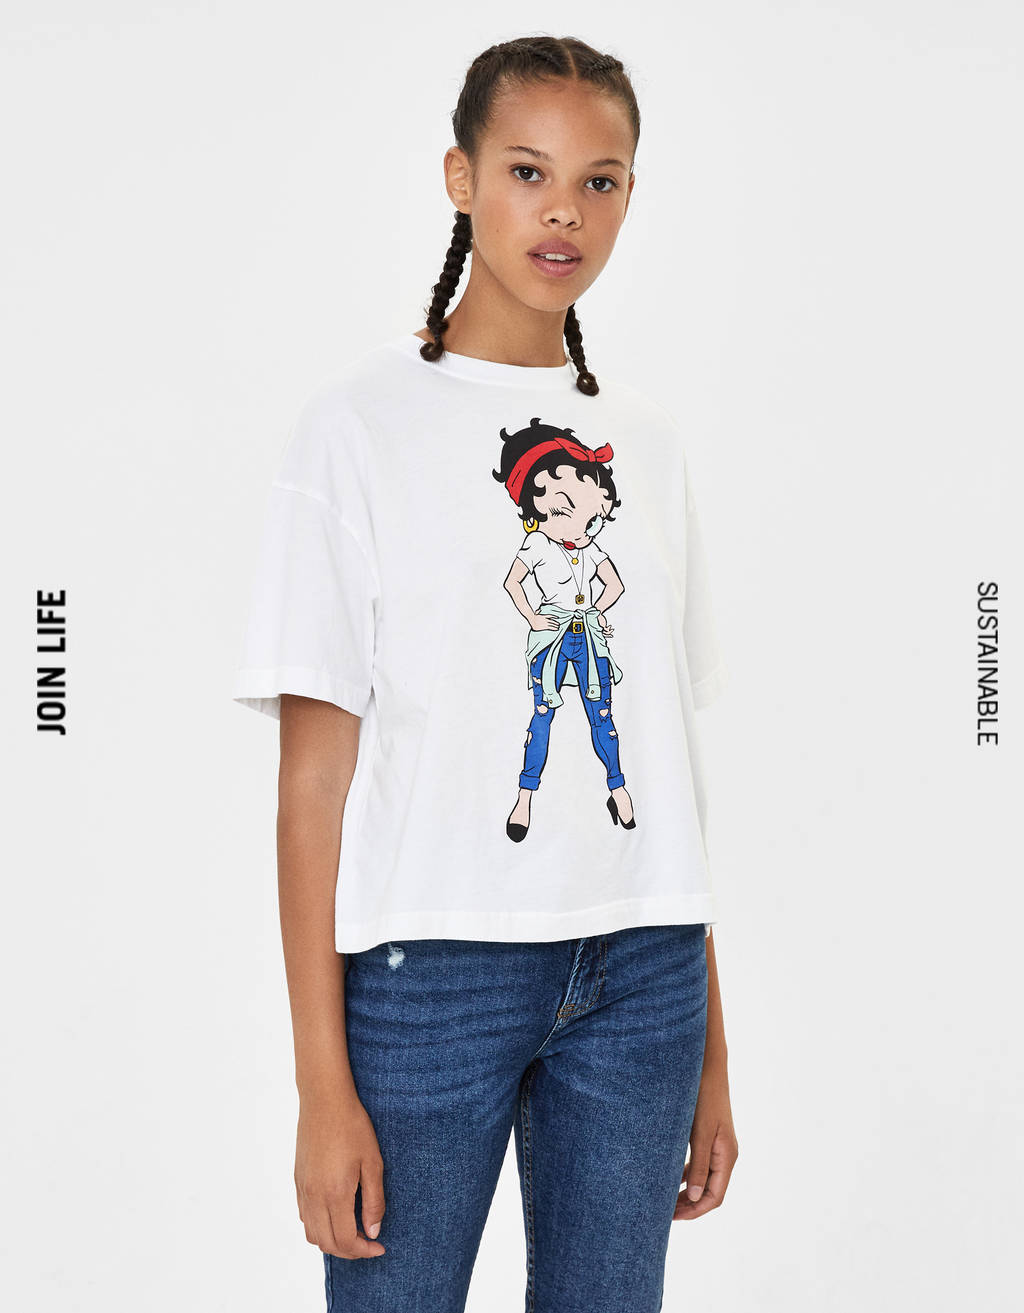 Camiseta con estampado Betty Boop